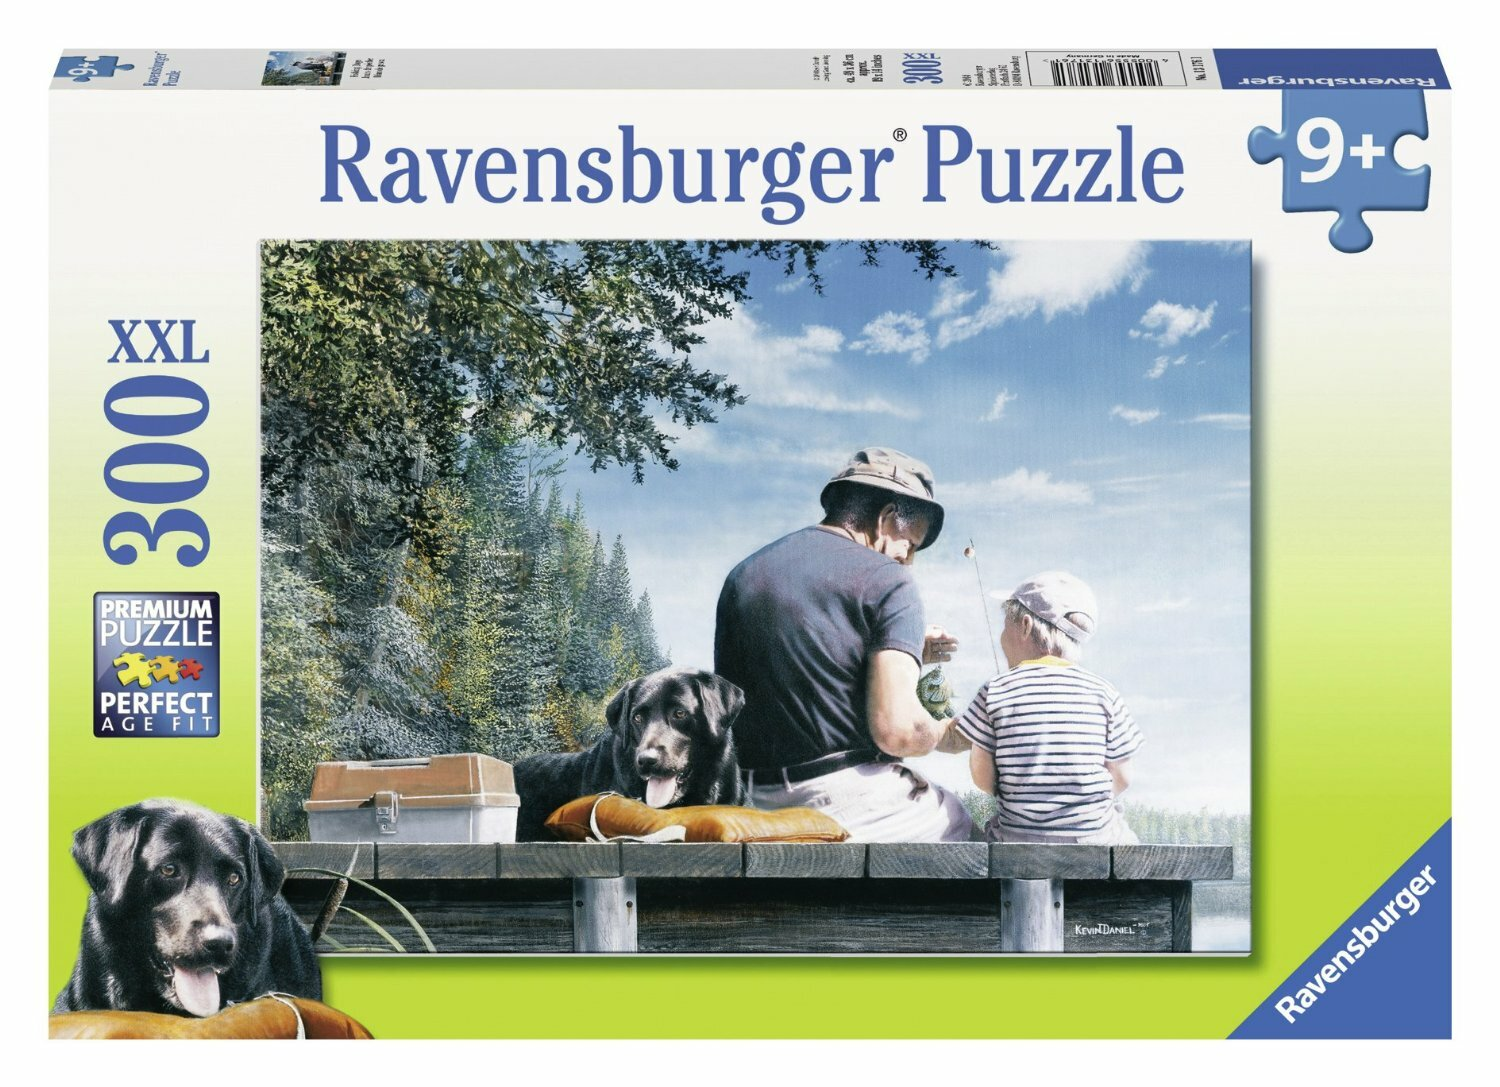 Ravensburger Puzzle Fishing Days 300 Piece Puzzle